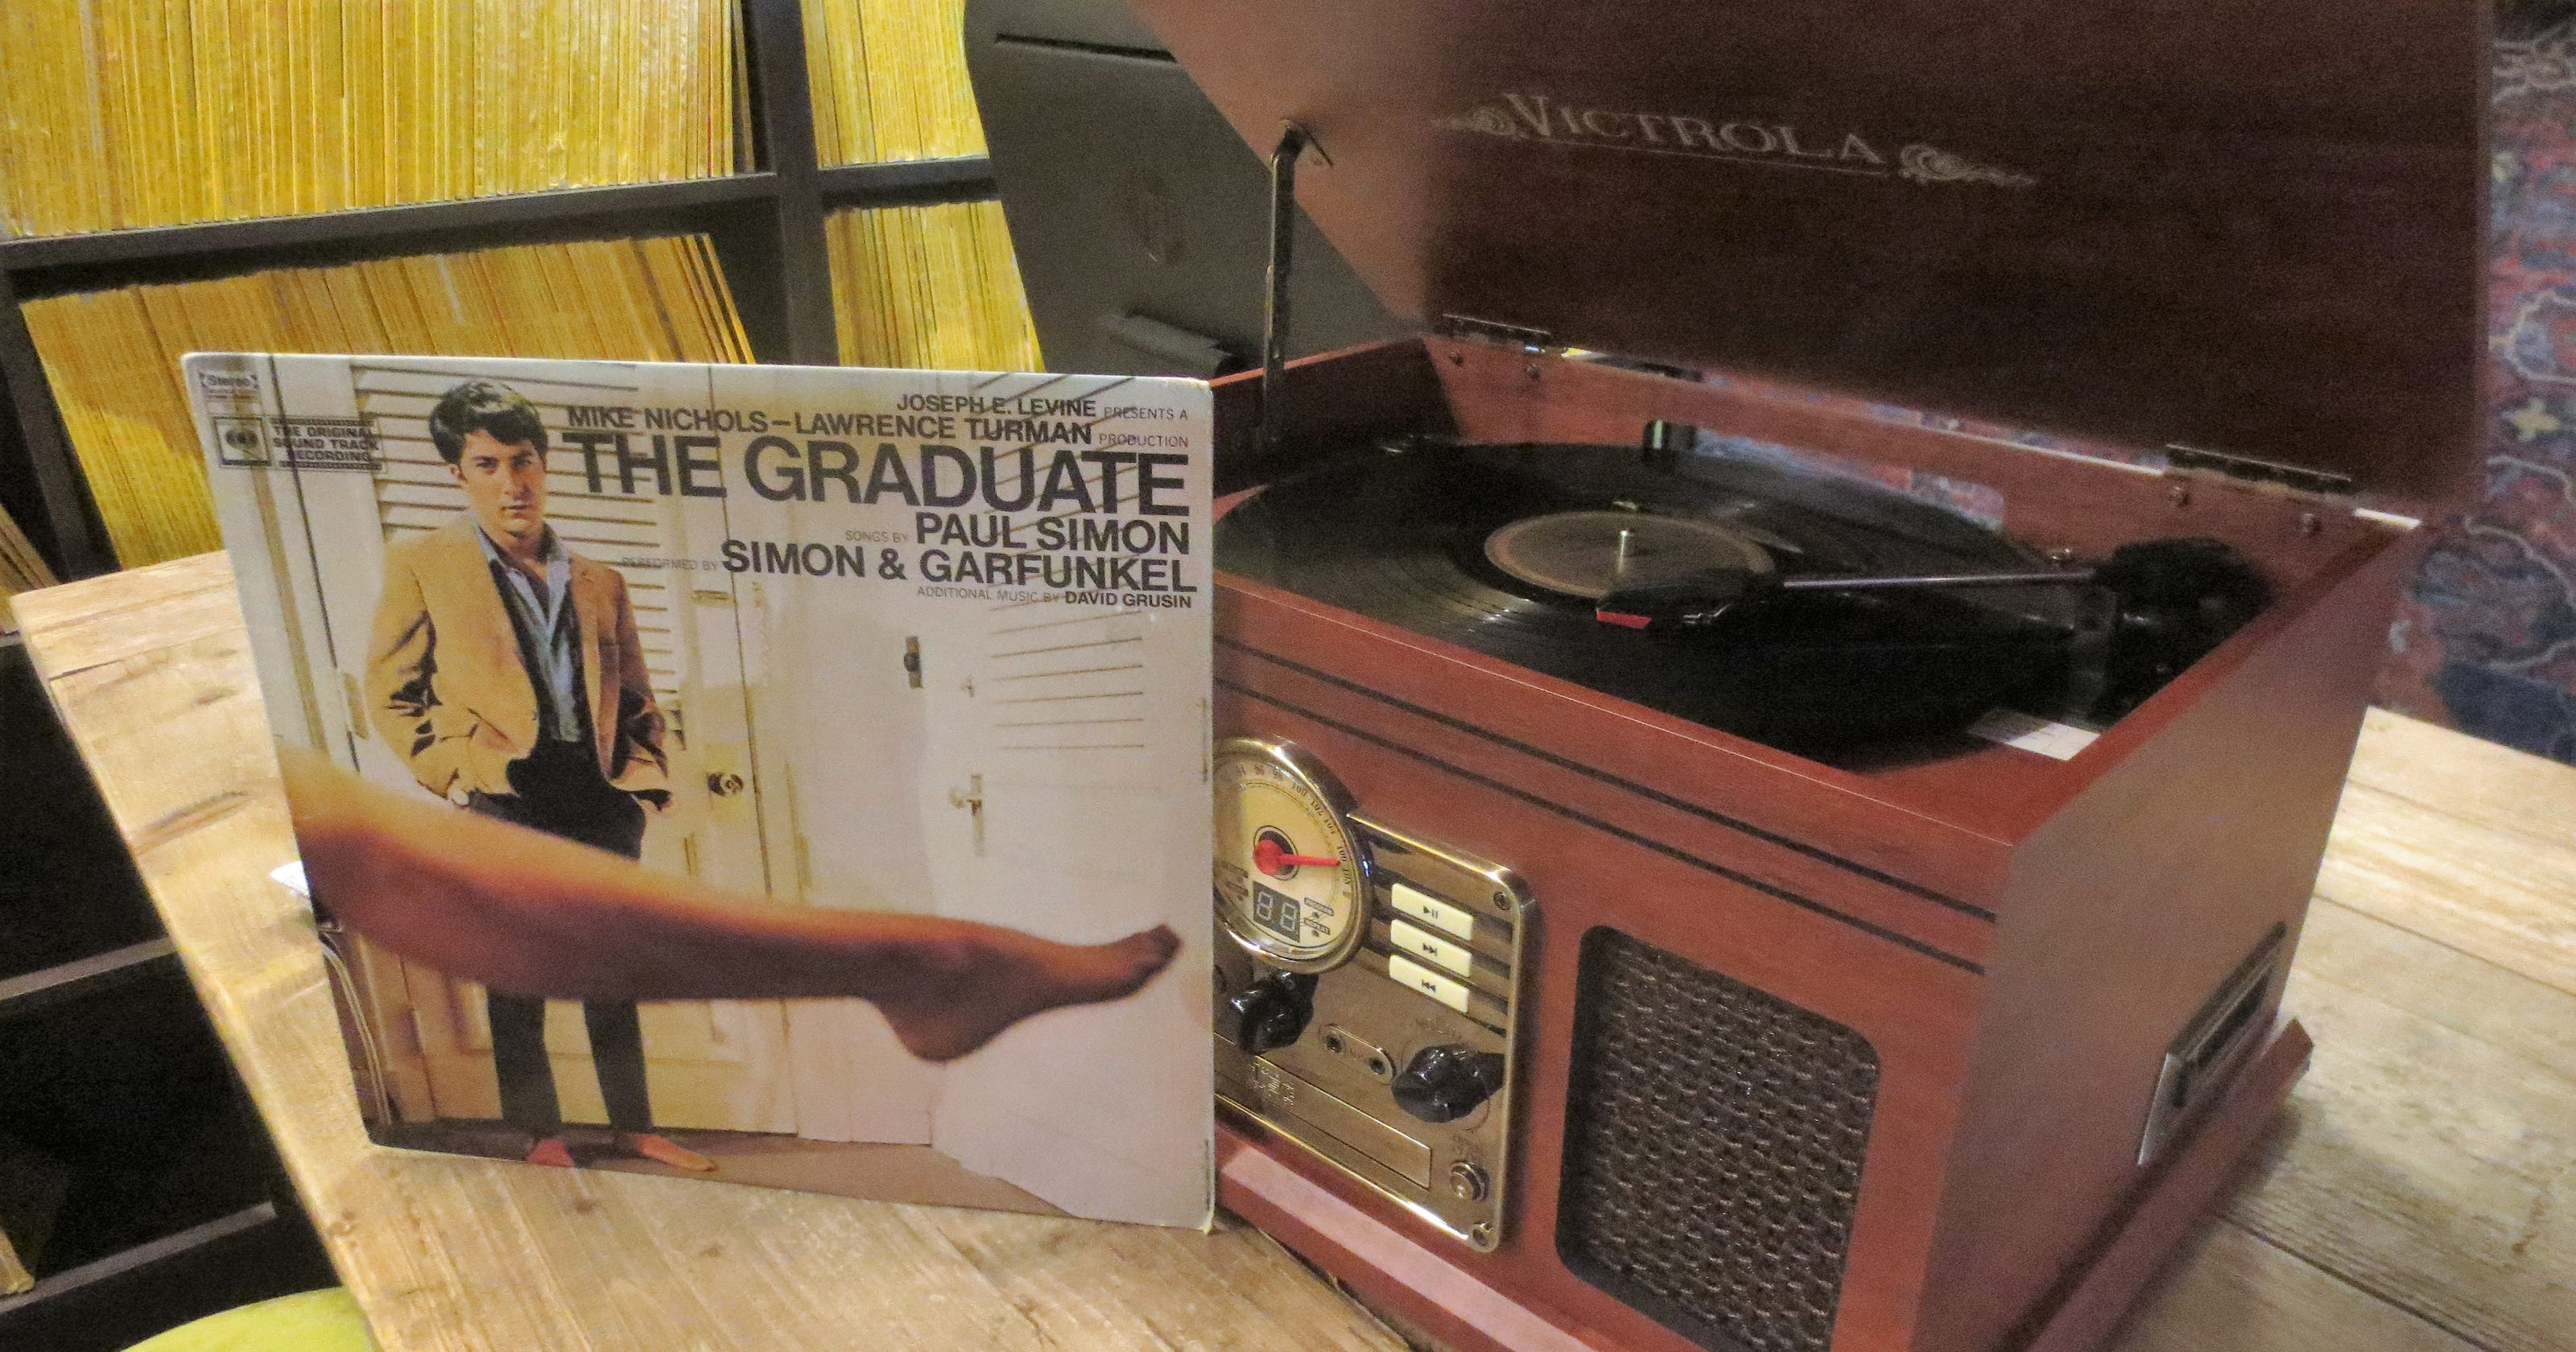 The Graduate': On the hunt for Mrs  Robinson in Berkeley, Calif